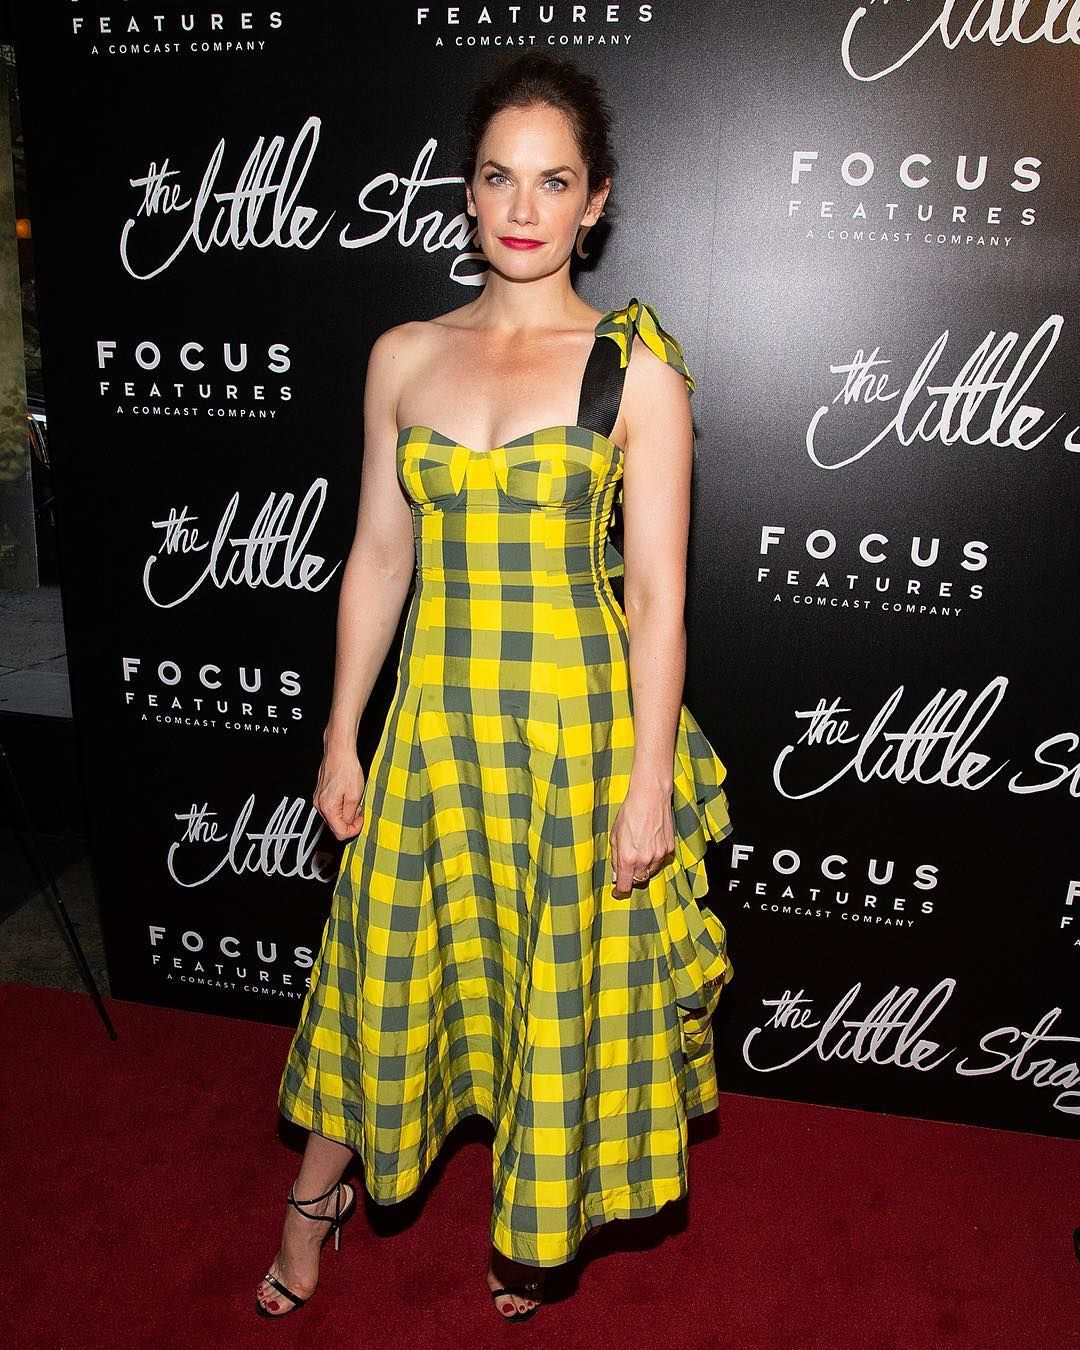 RuthWilson on the red carpet at the